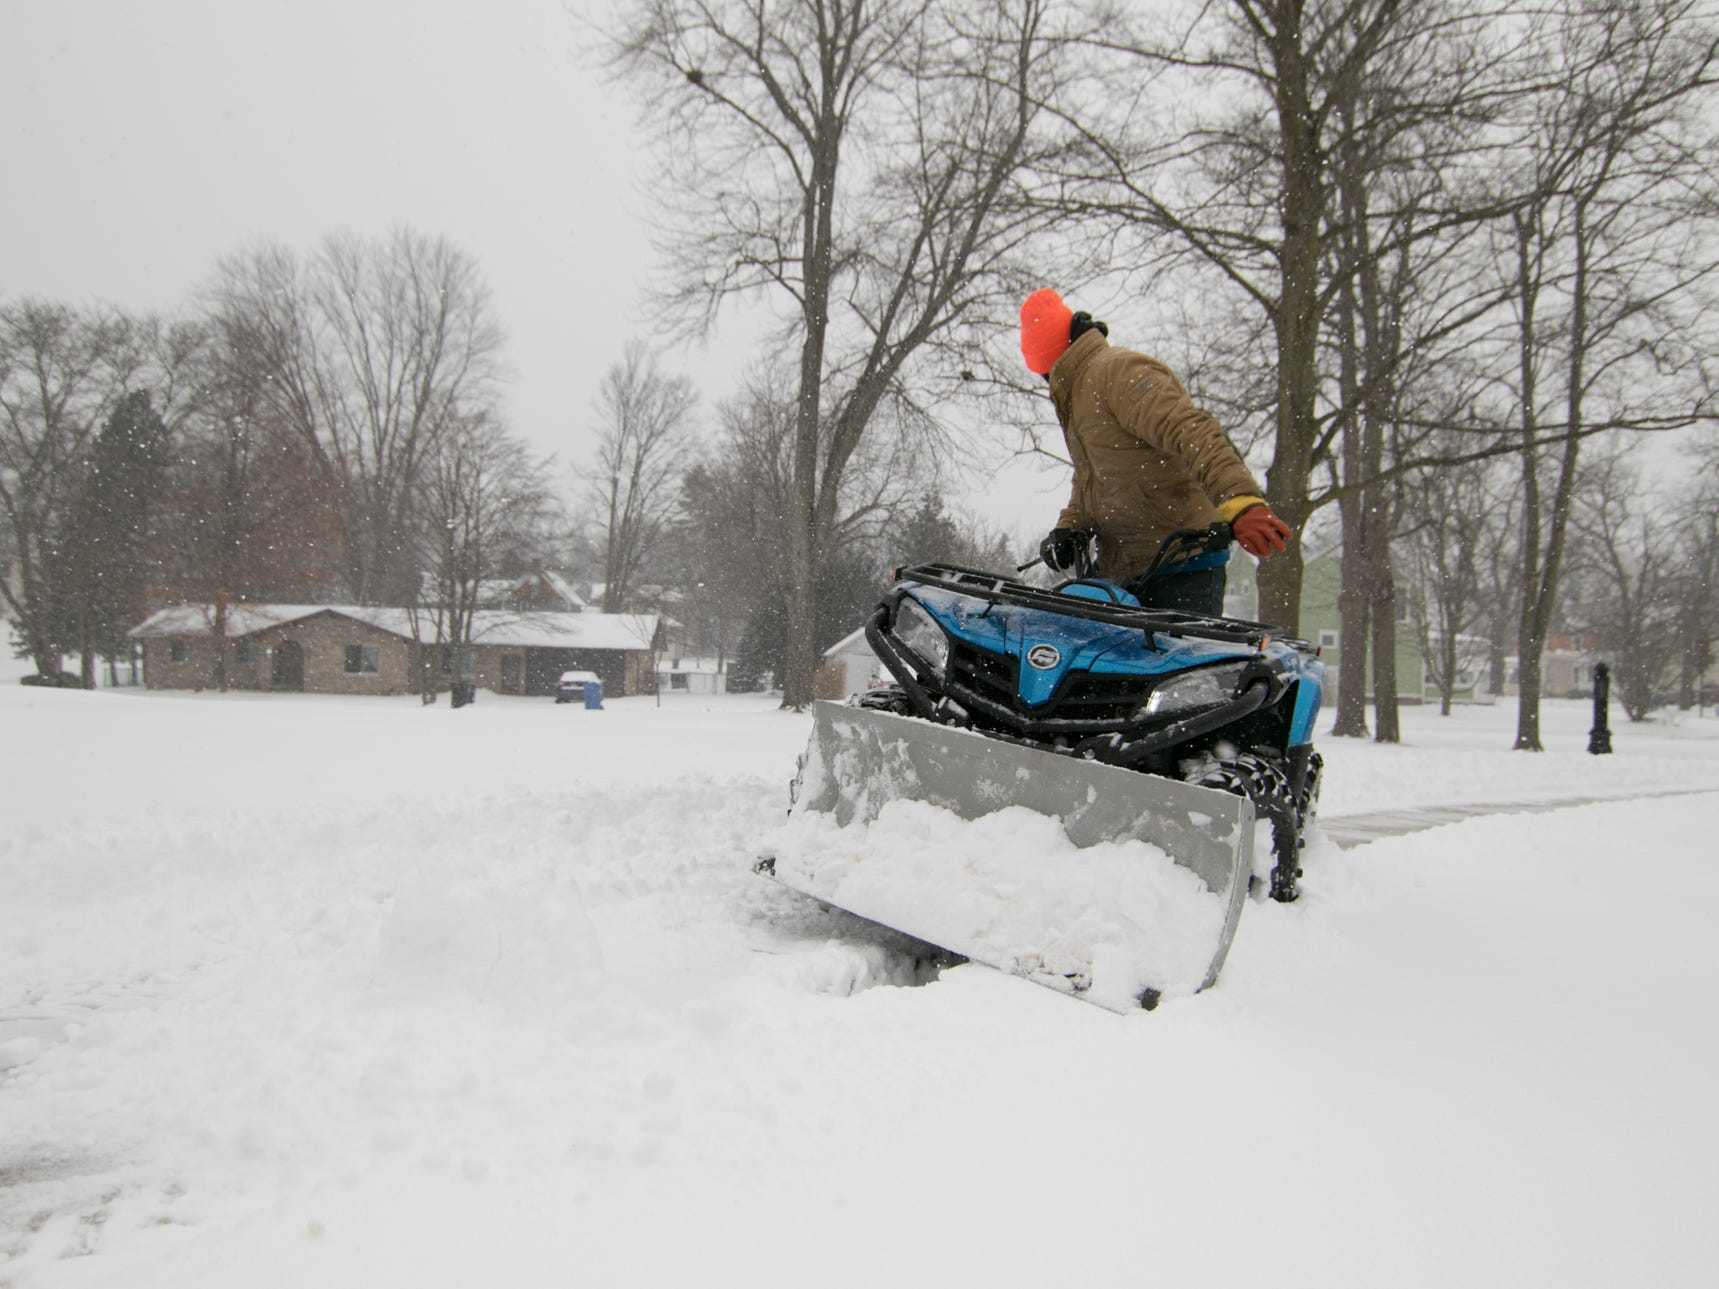 A member of the CBA Outdoors Landscaping Services plows the driveway at the McPherson Mansion, an office building in downtown Howell Monday, Jan. 28, 2019.